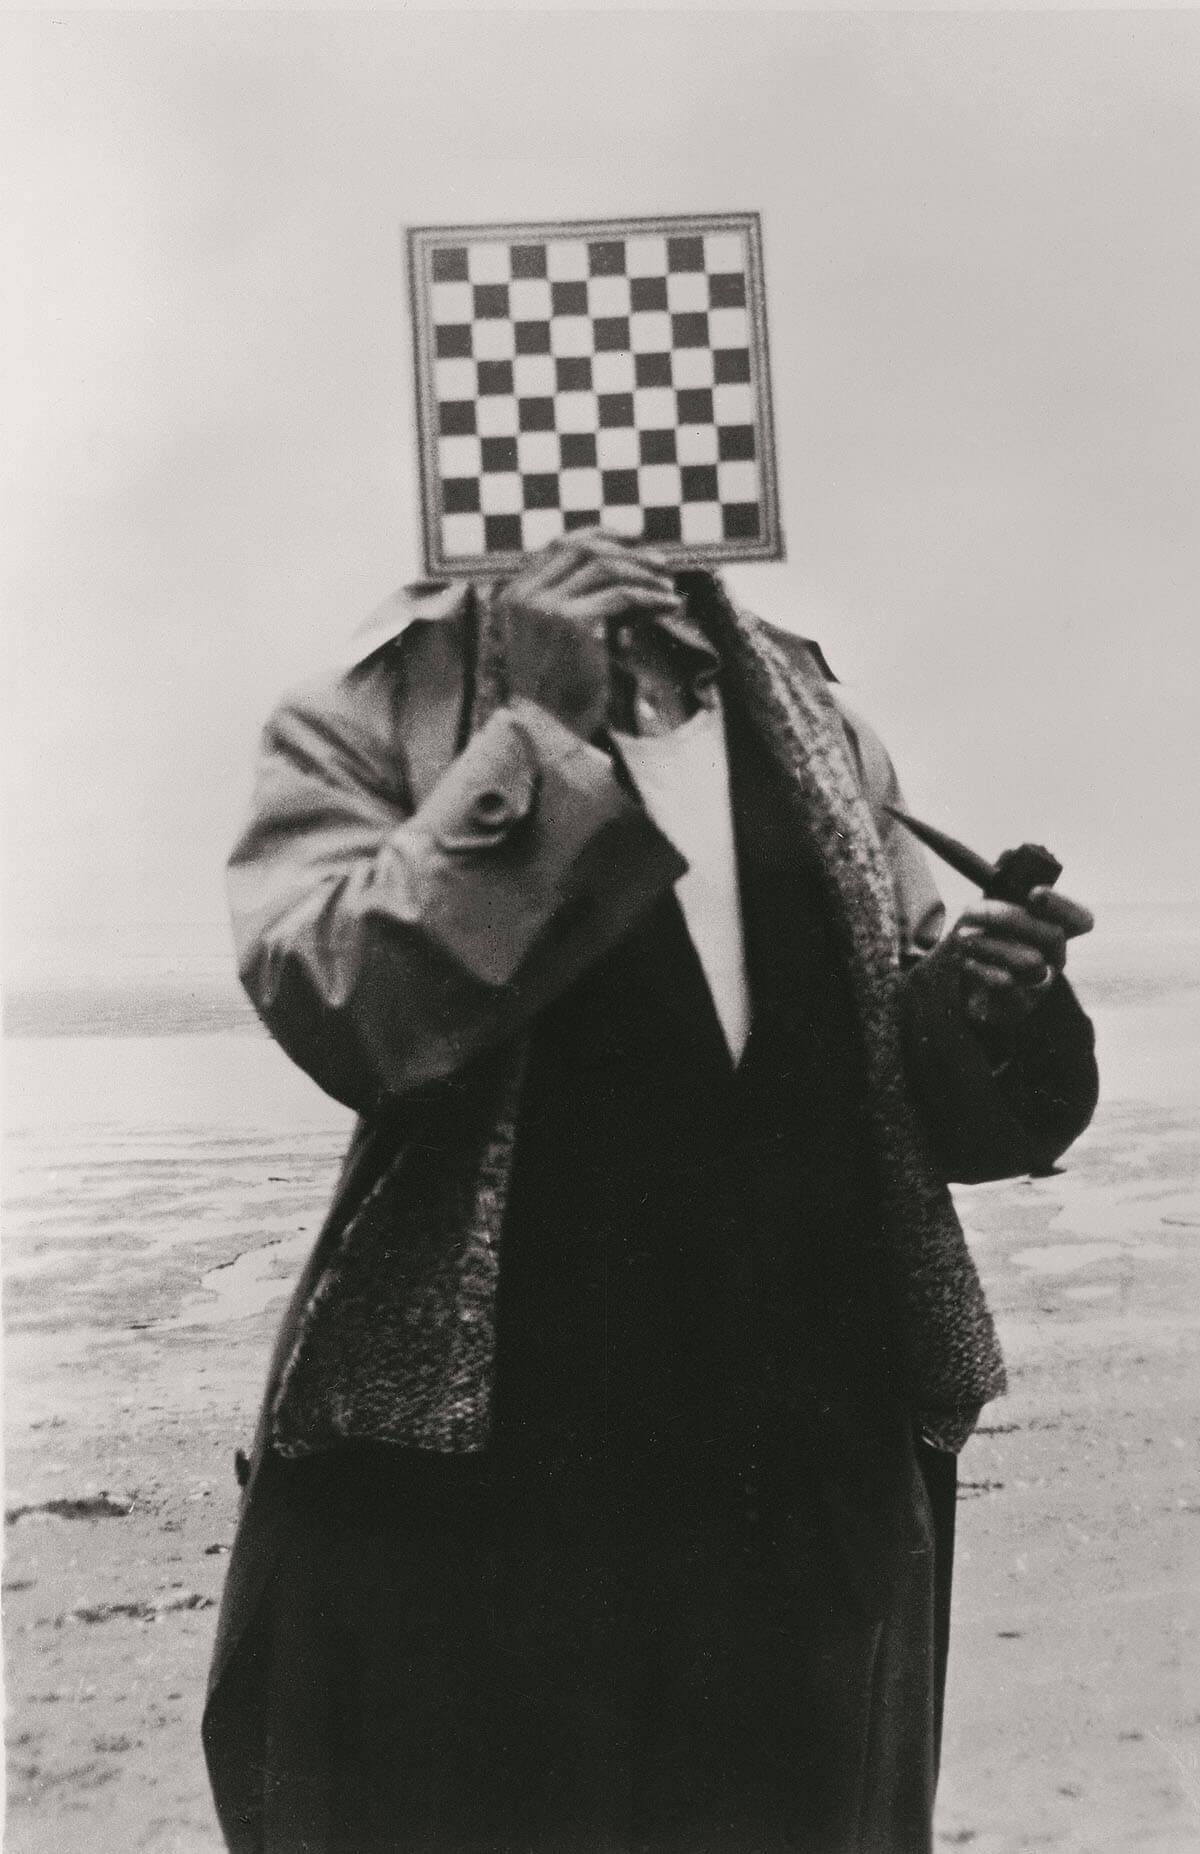 René Magritte portrait of a man with pipe and chess board